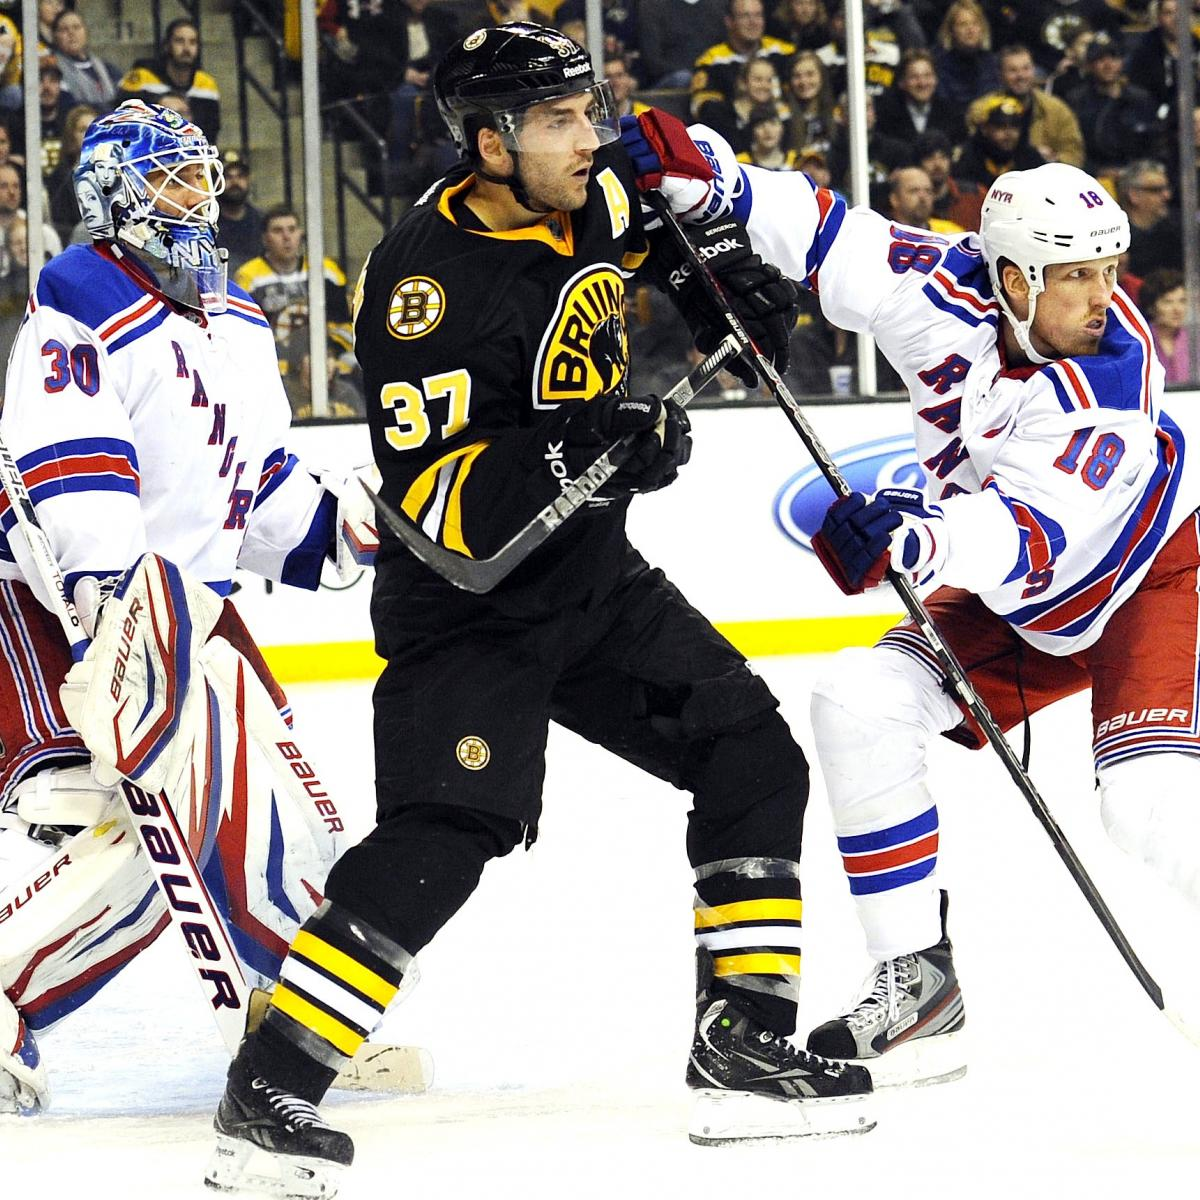 Boston Bruins Vs. New York Rangers: NHL Playoff Preview